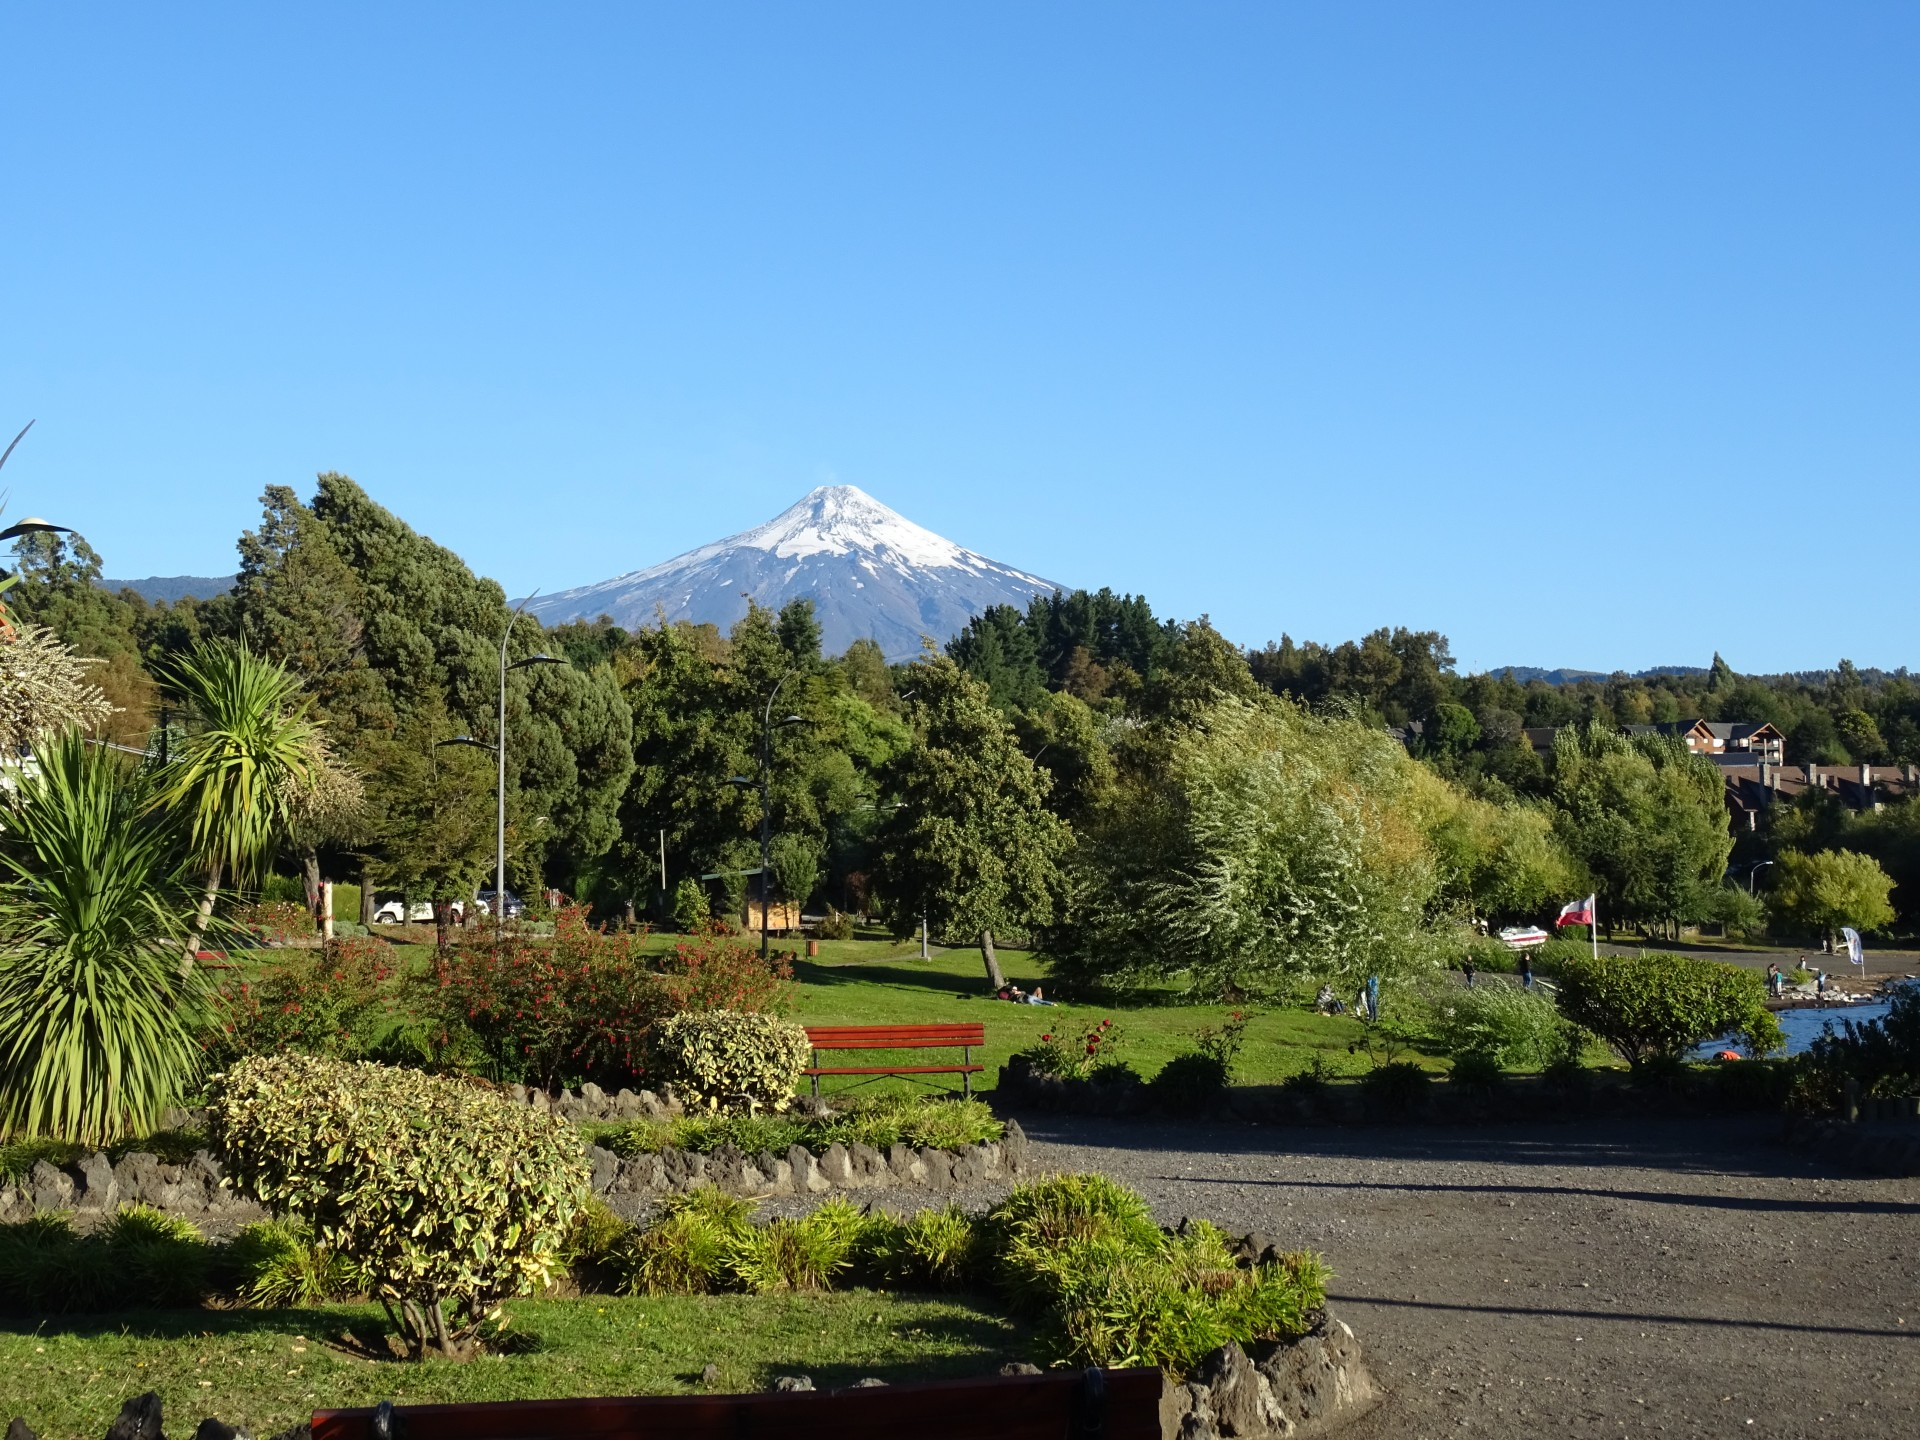 Volcán Villarrica. Looks all innocent from here.